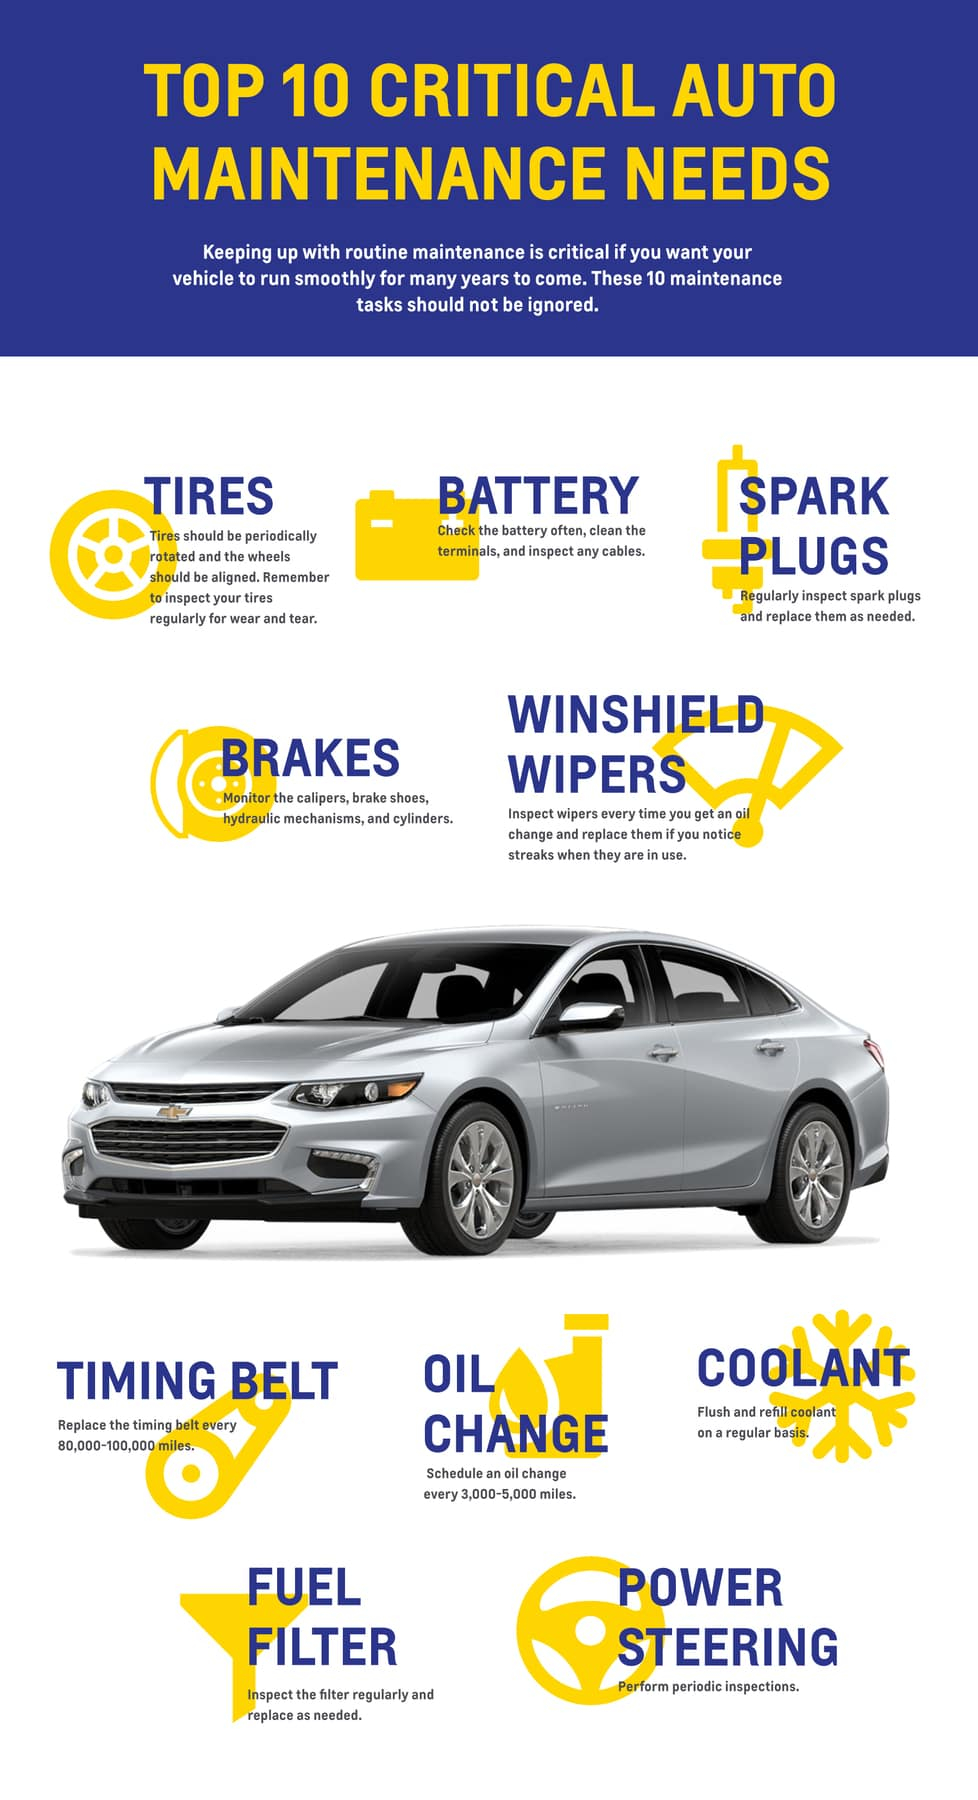 Vehicle Maintenance Menu Car Tips Libertyville Chevy 2014 Altima Fuel Filter Dealership Info